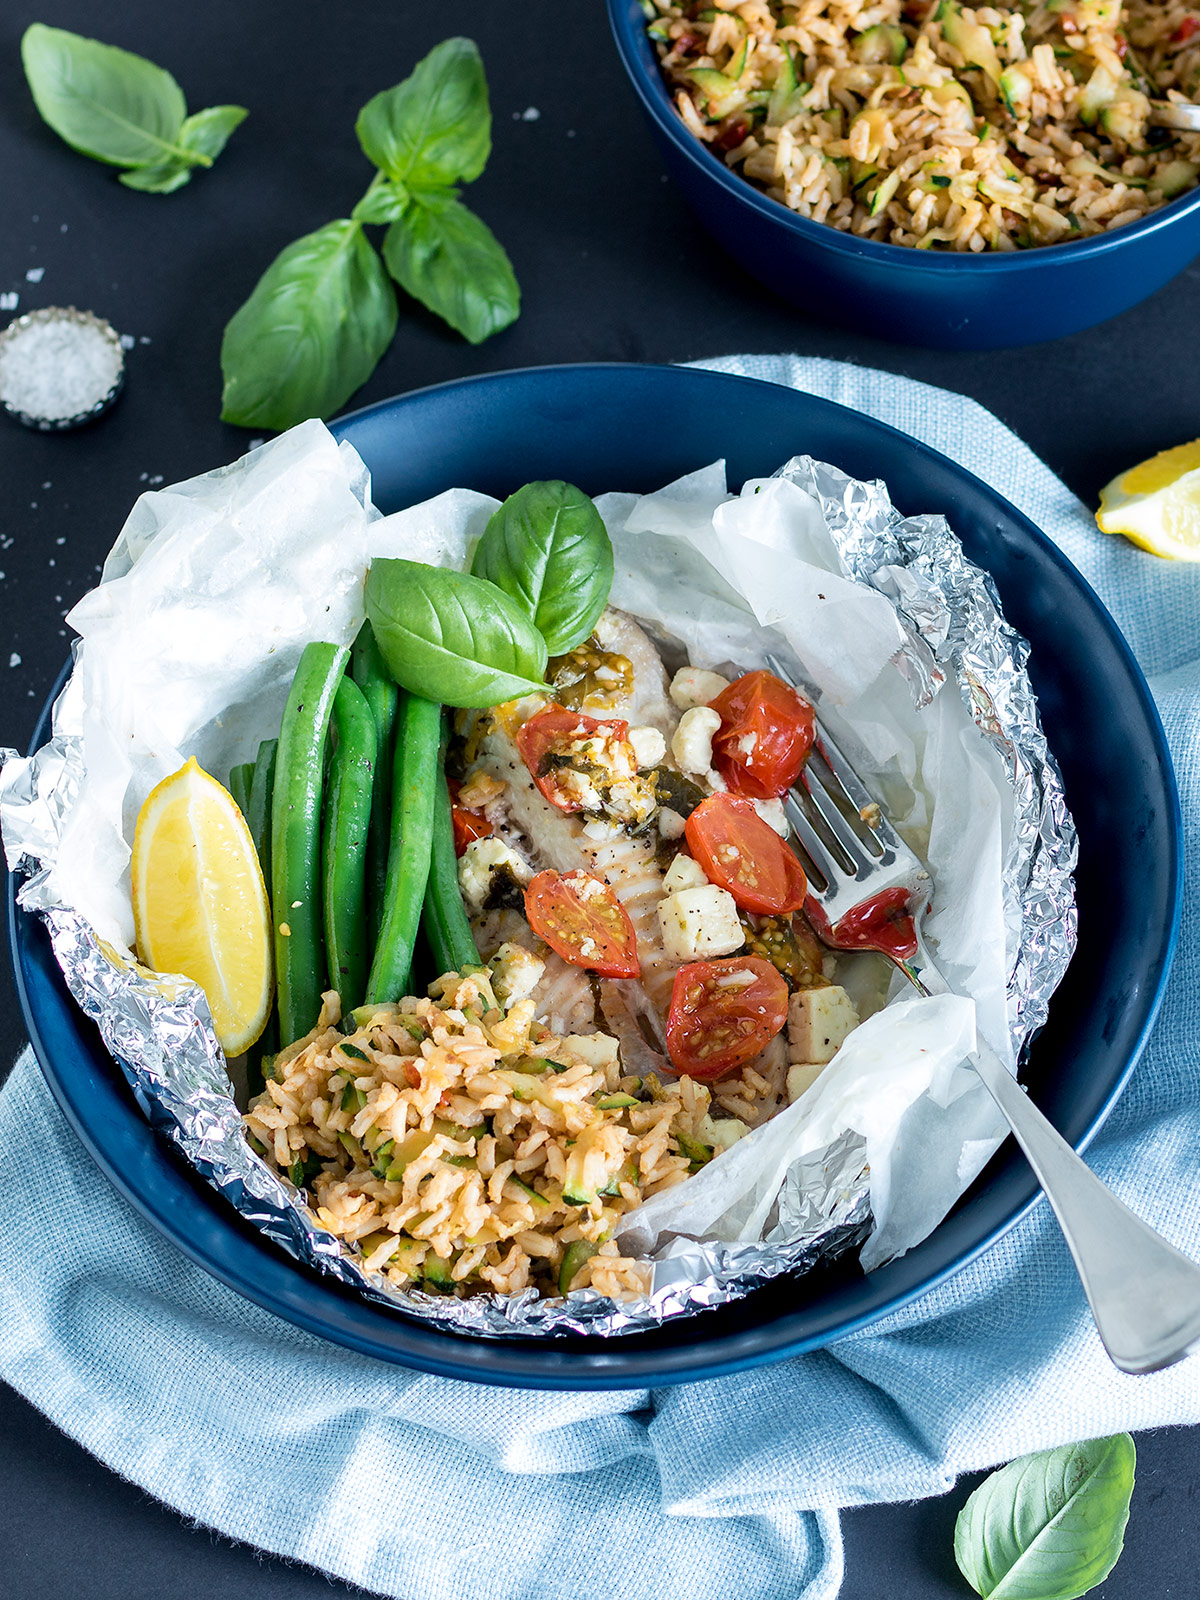 These Mediterranean fish parcels are one of my favourite ways to enjoy fish. Cooking it in parcels locks in all the delicious flavour 